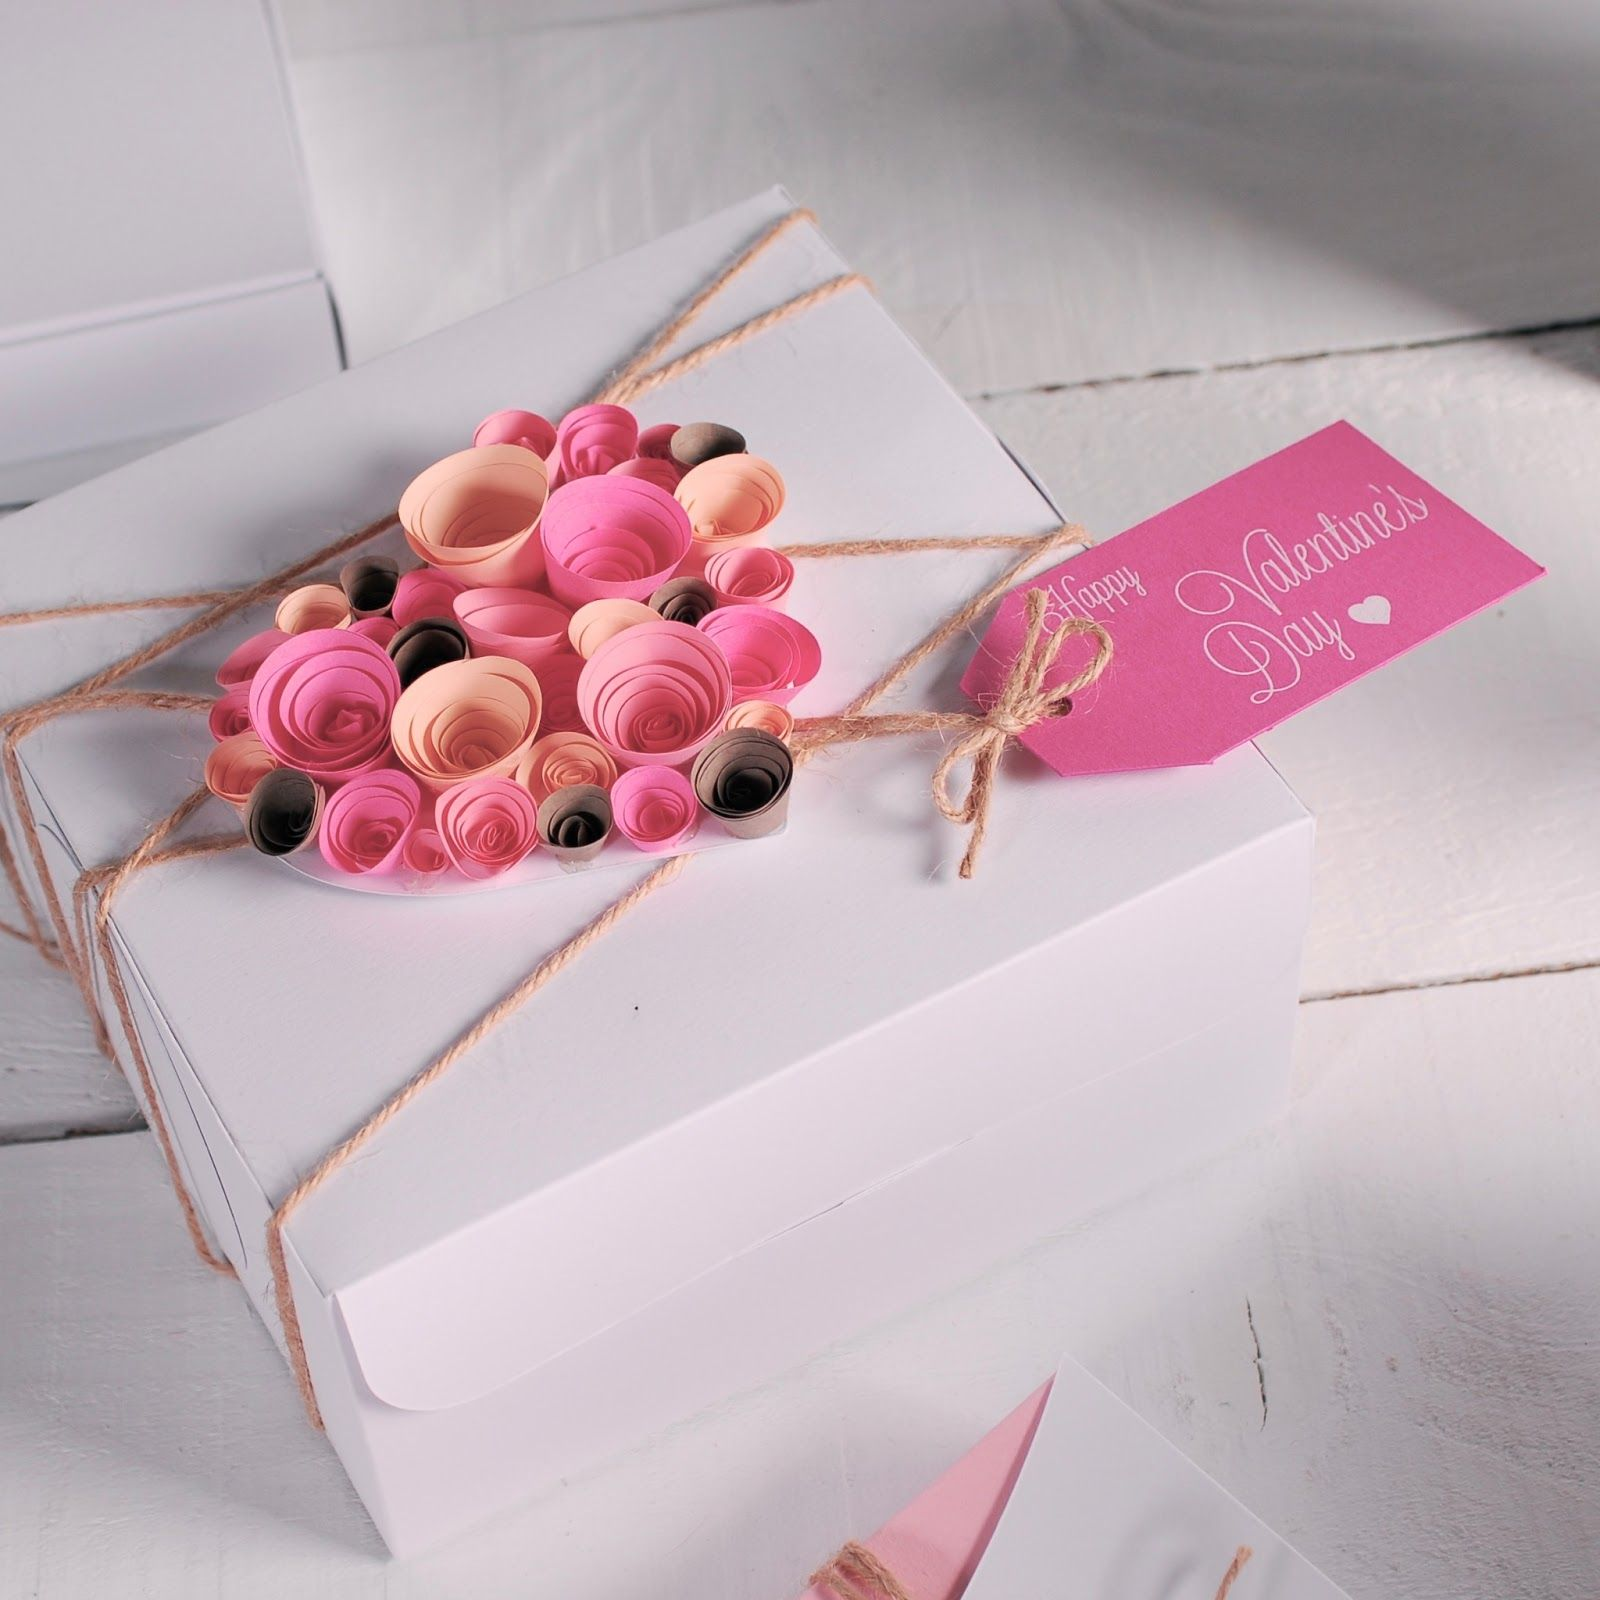 Gift wrapping ideas box packaging pink romantic card message gift wrapping ideas box packaging pink romantic card message negle Images